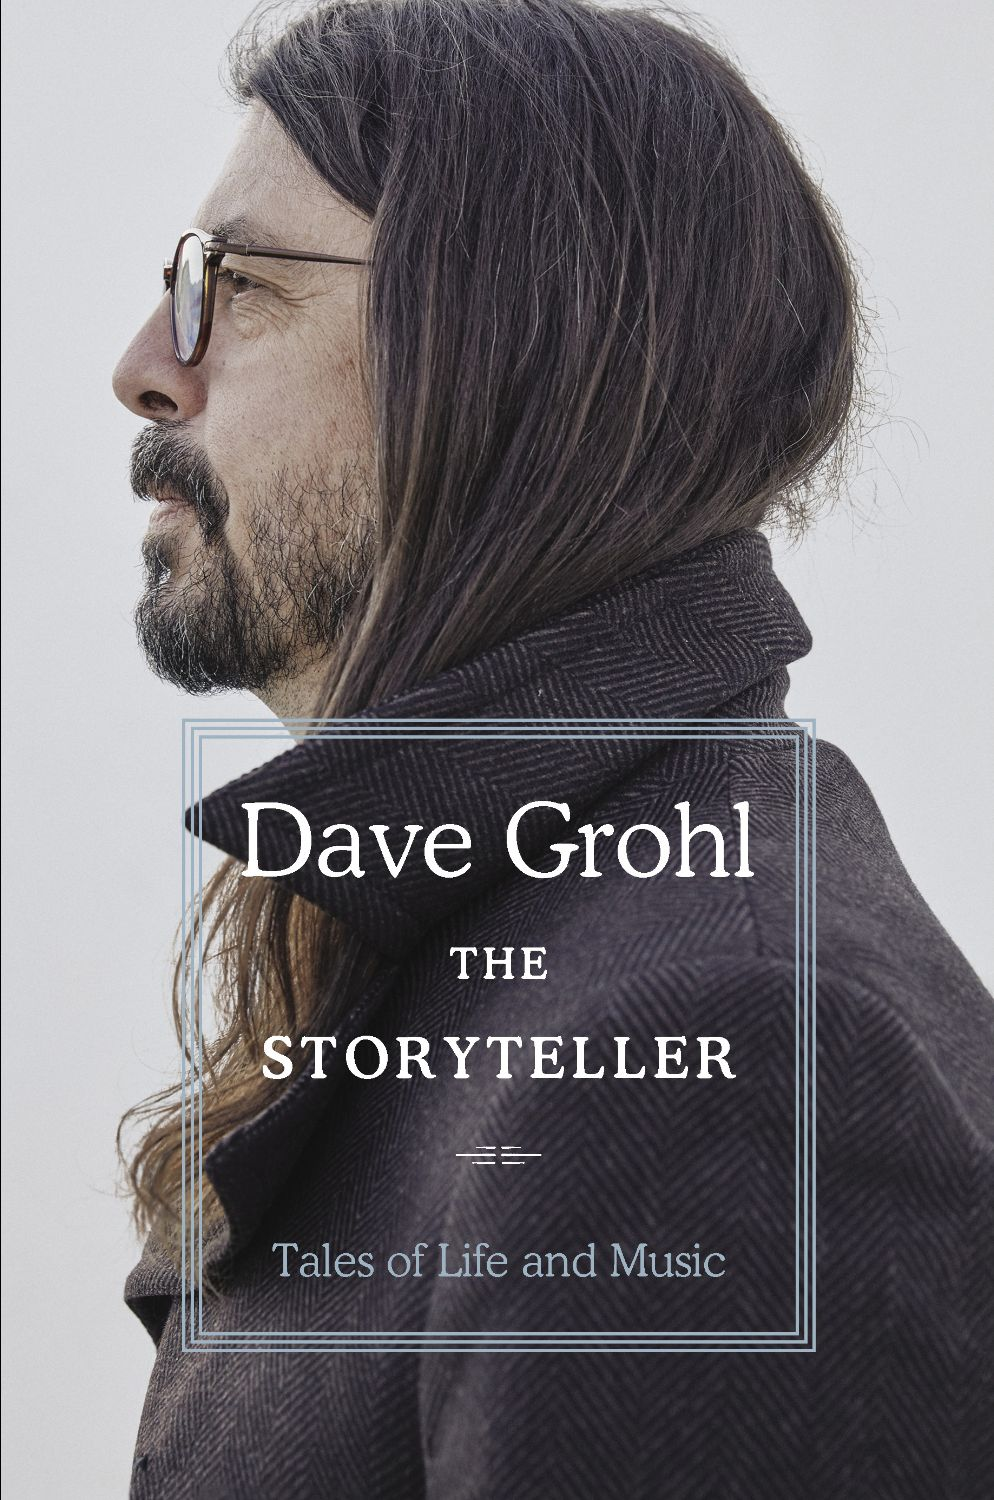 Dave Grohl to publish new book – 'The Storyteller'